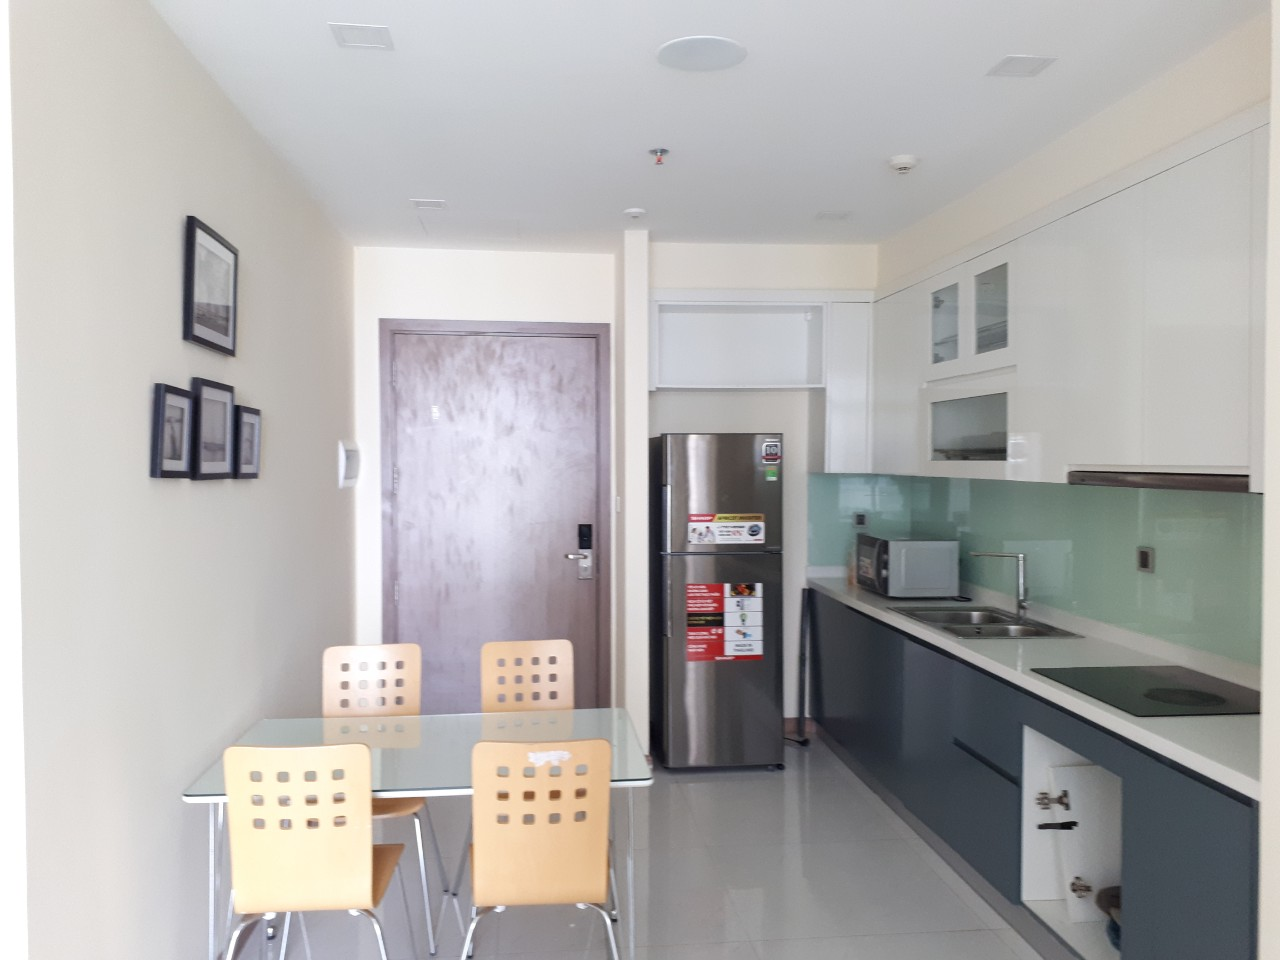 apartment for rent in binh thanh district BT105P1326 (2)